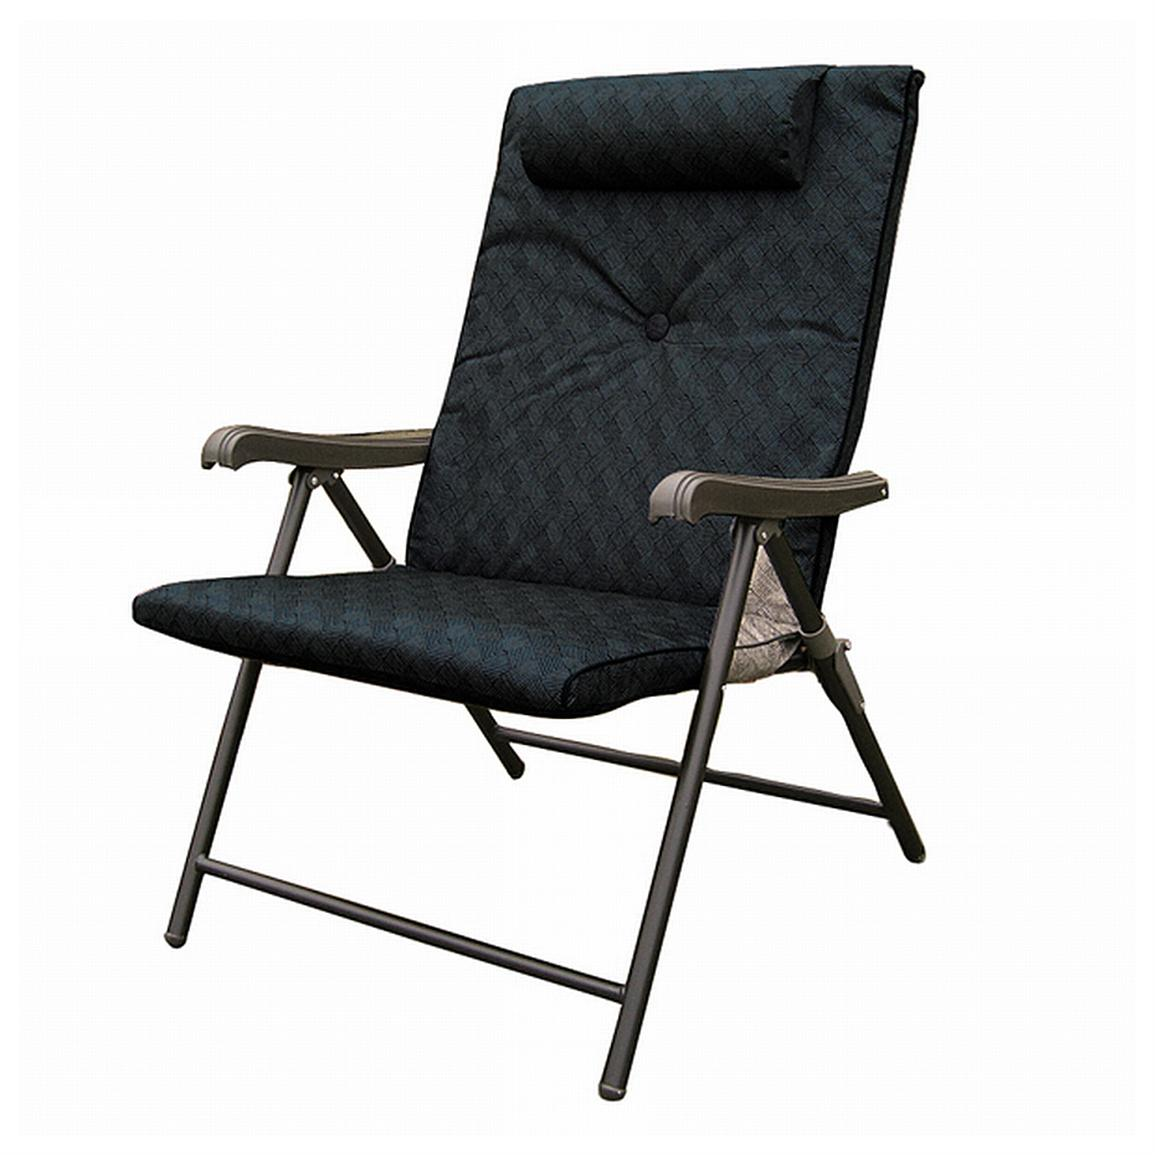 Prime Plus Folding Chair Black Chairs at